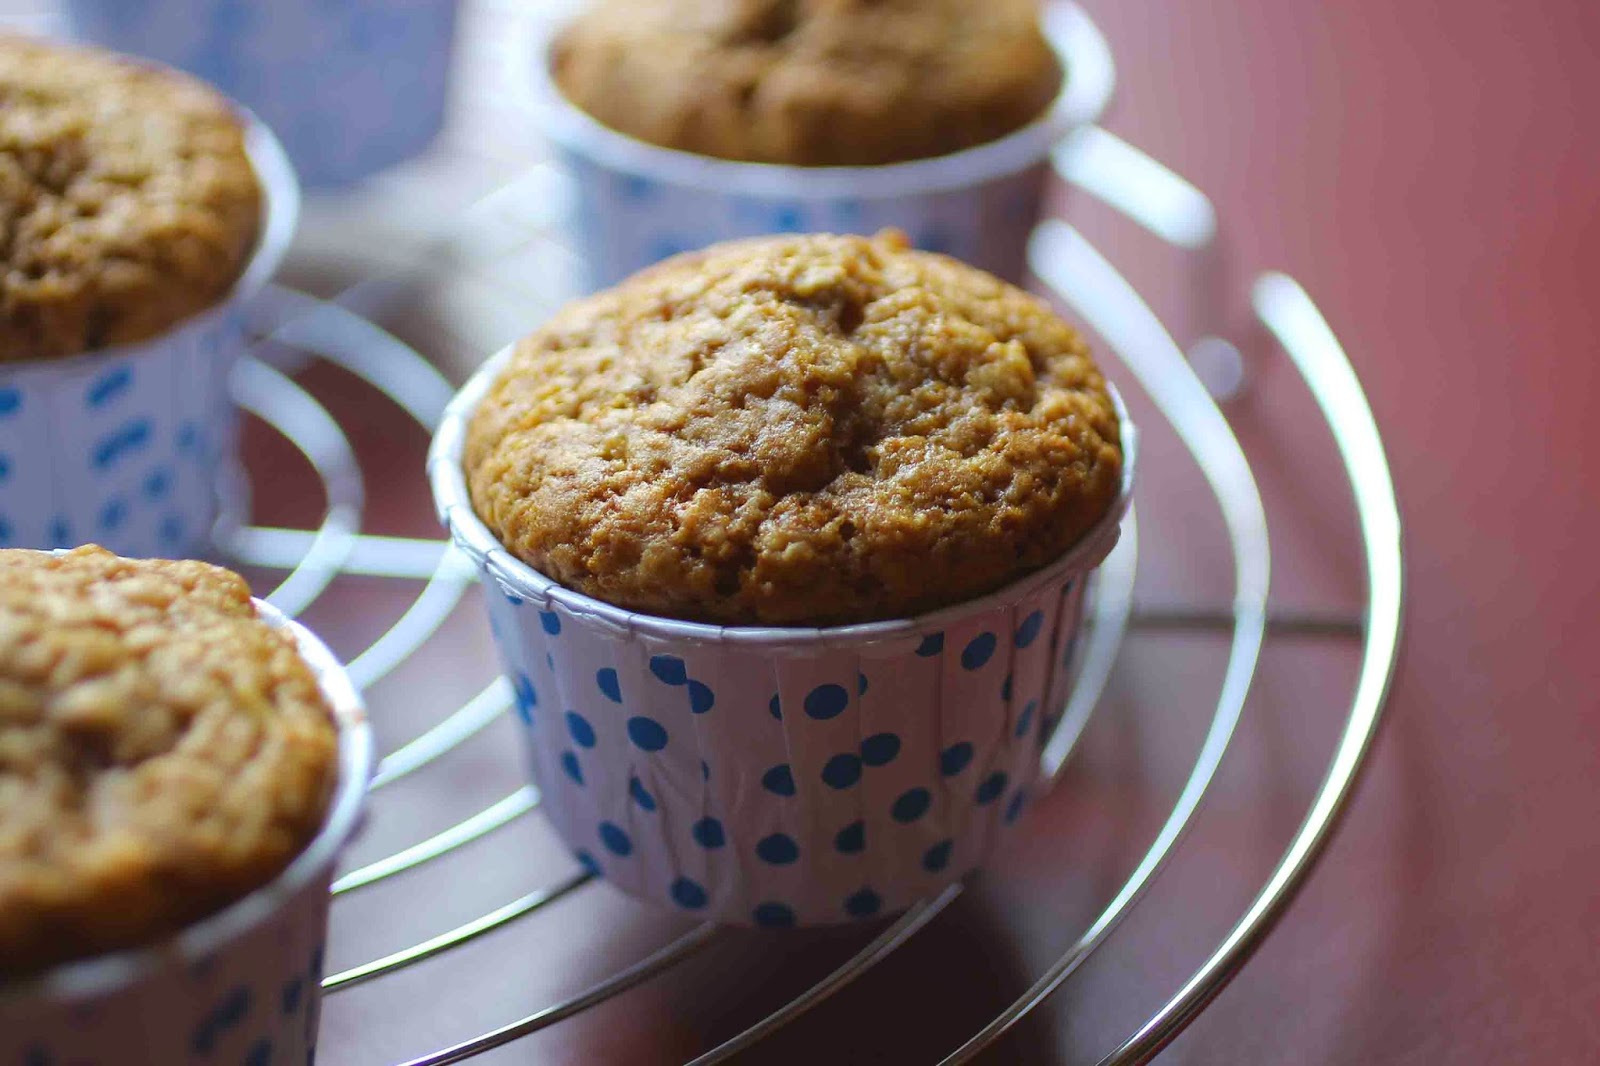 http://camilleenchocolat.blogspot.fr/2015/04/muffins-moelleux-la-pomme.html